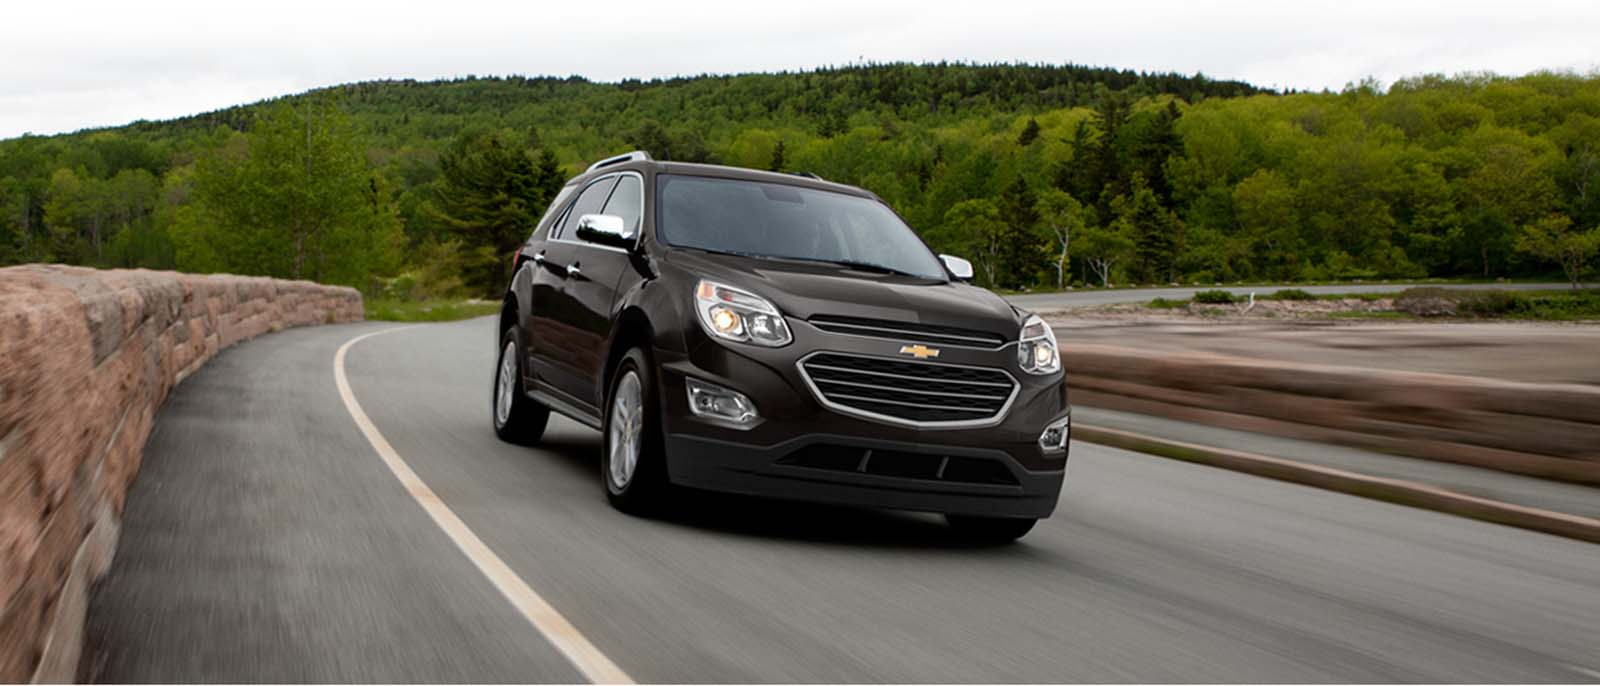 2016 Chevy Equinox in black